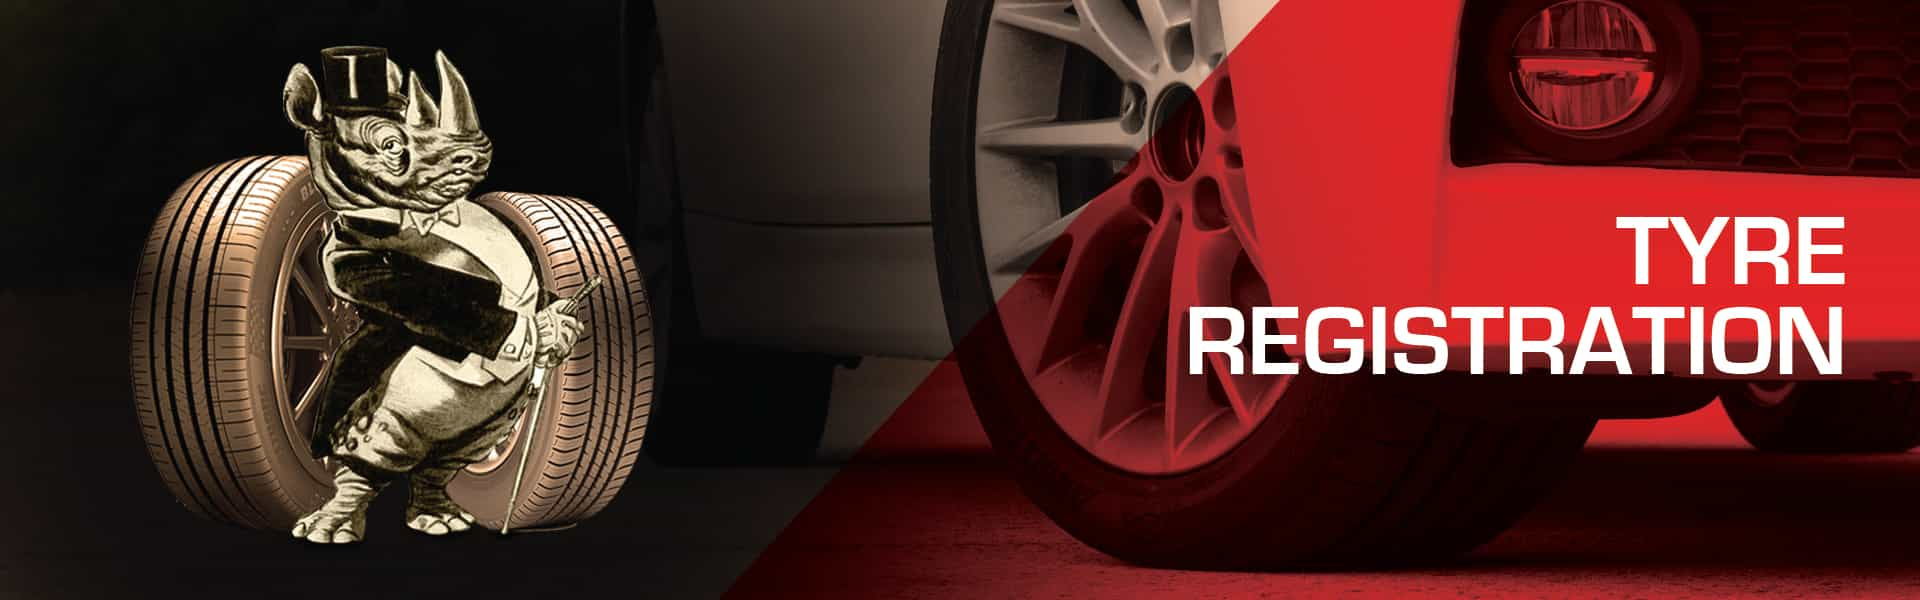 Armstrong_tyreregistration_banner